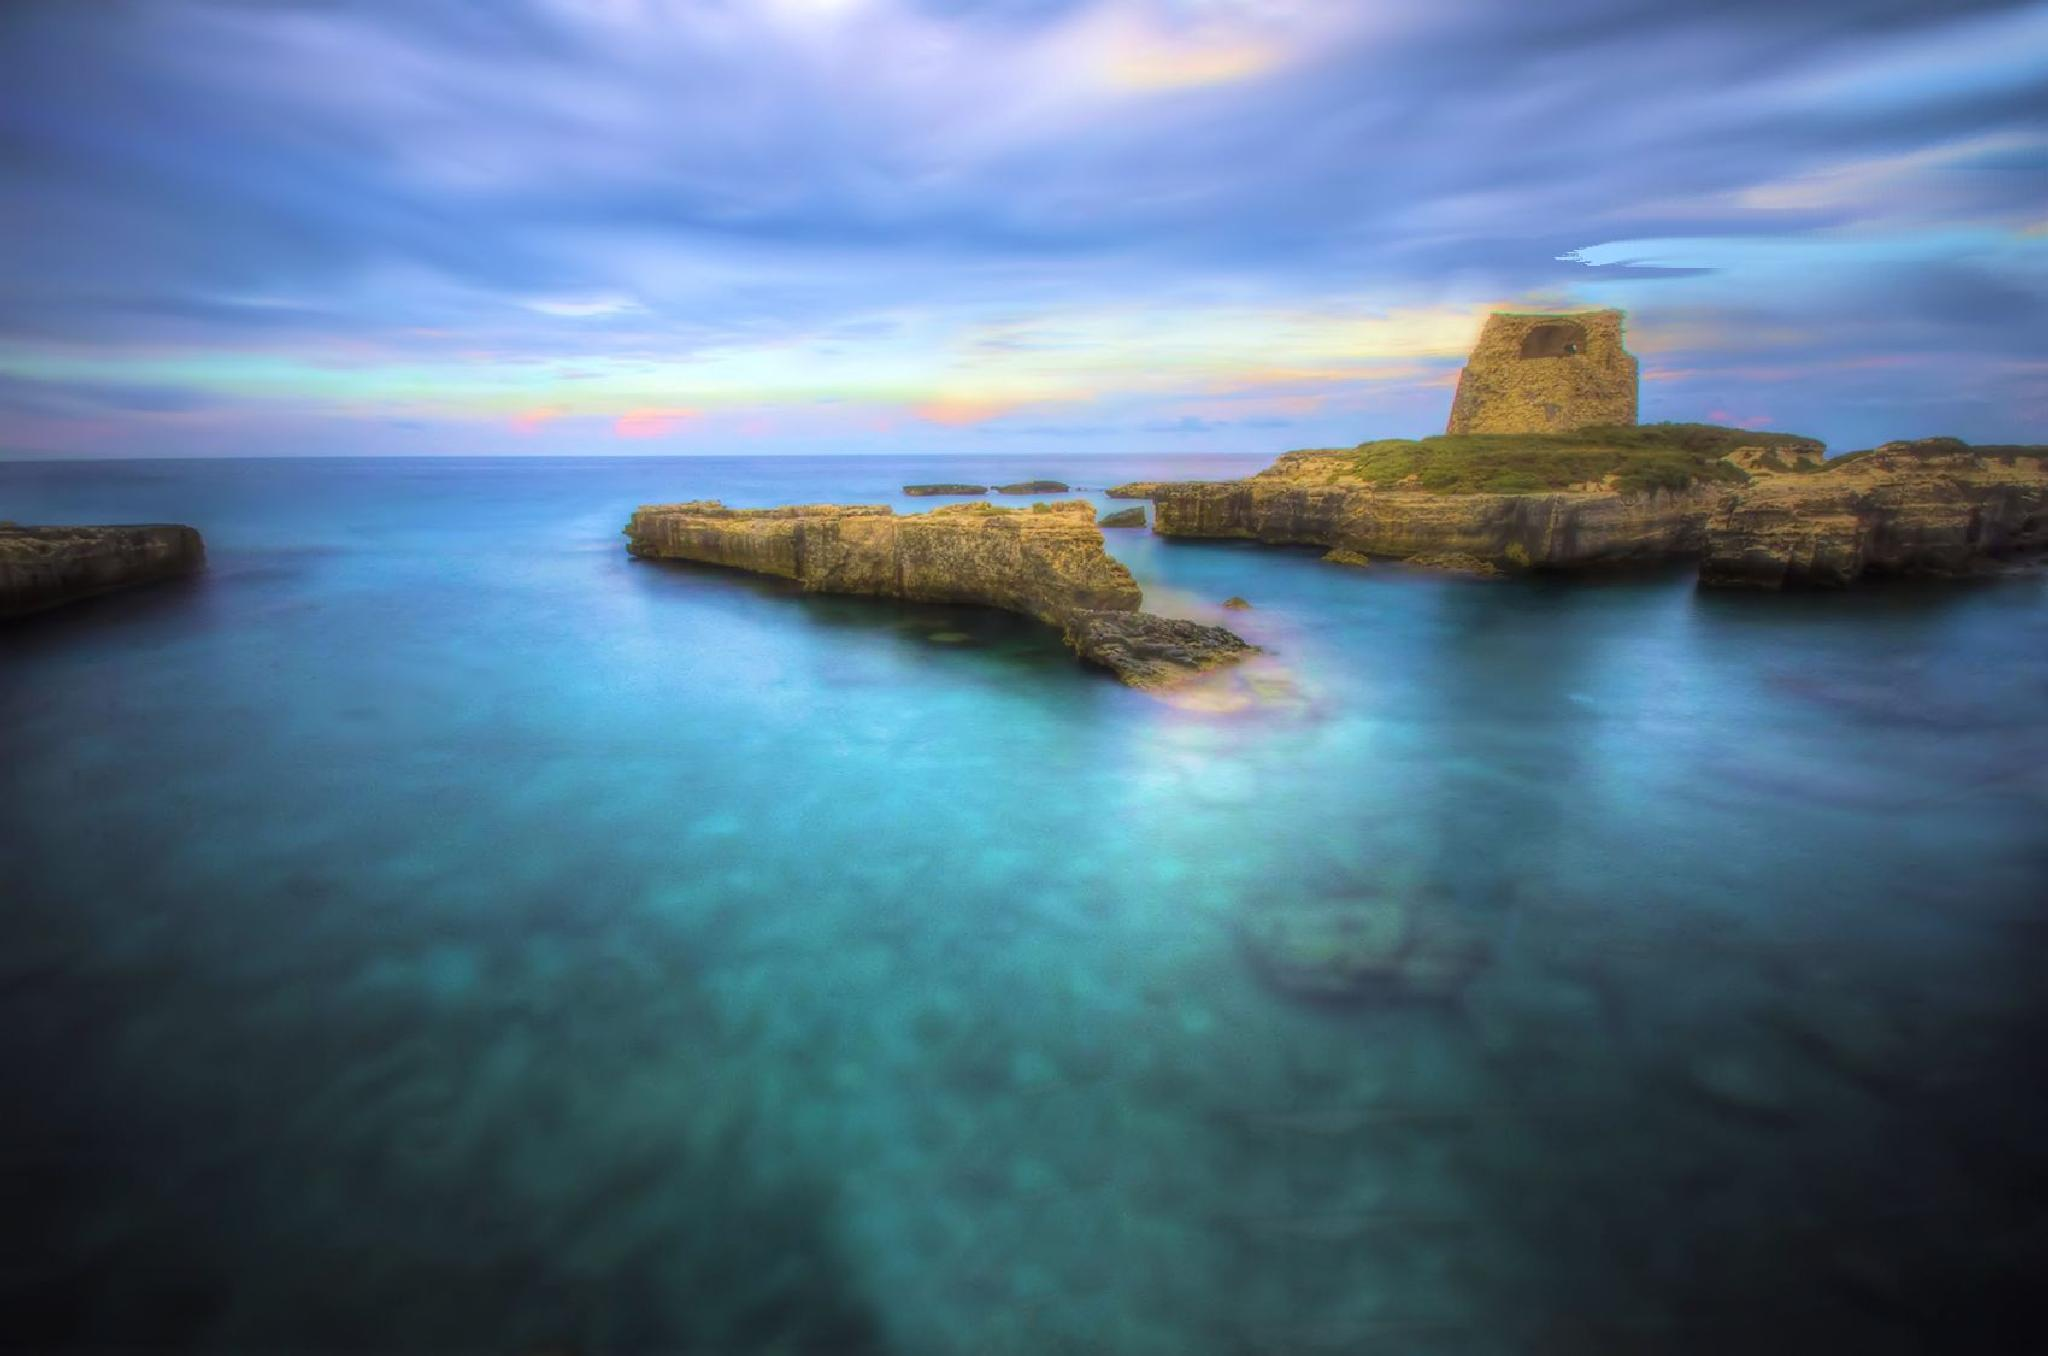 Torre S.Andrea (LE) by Amleto Lala